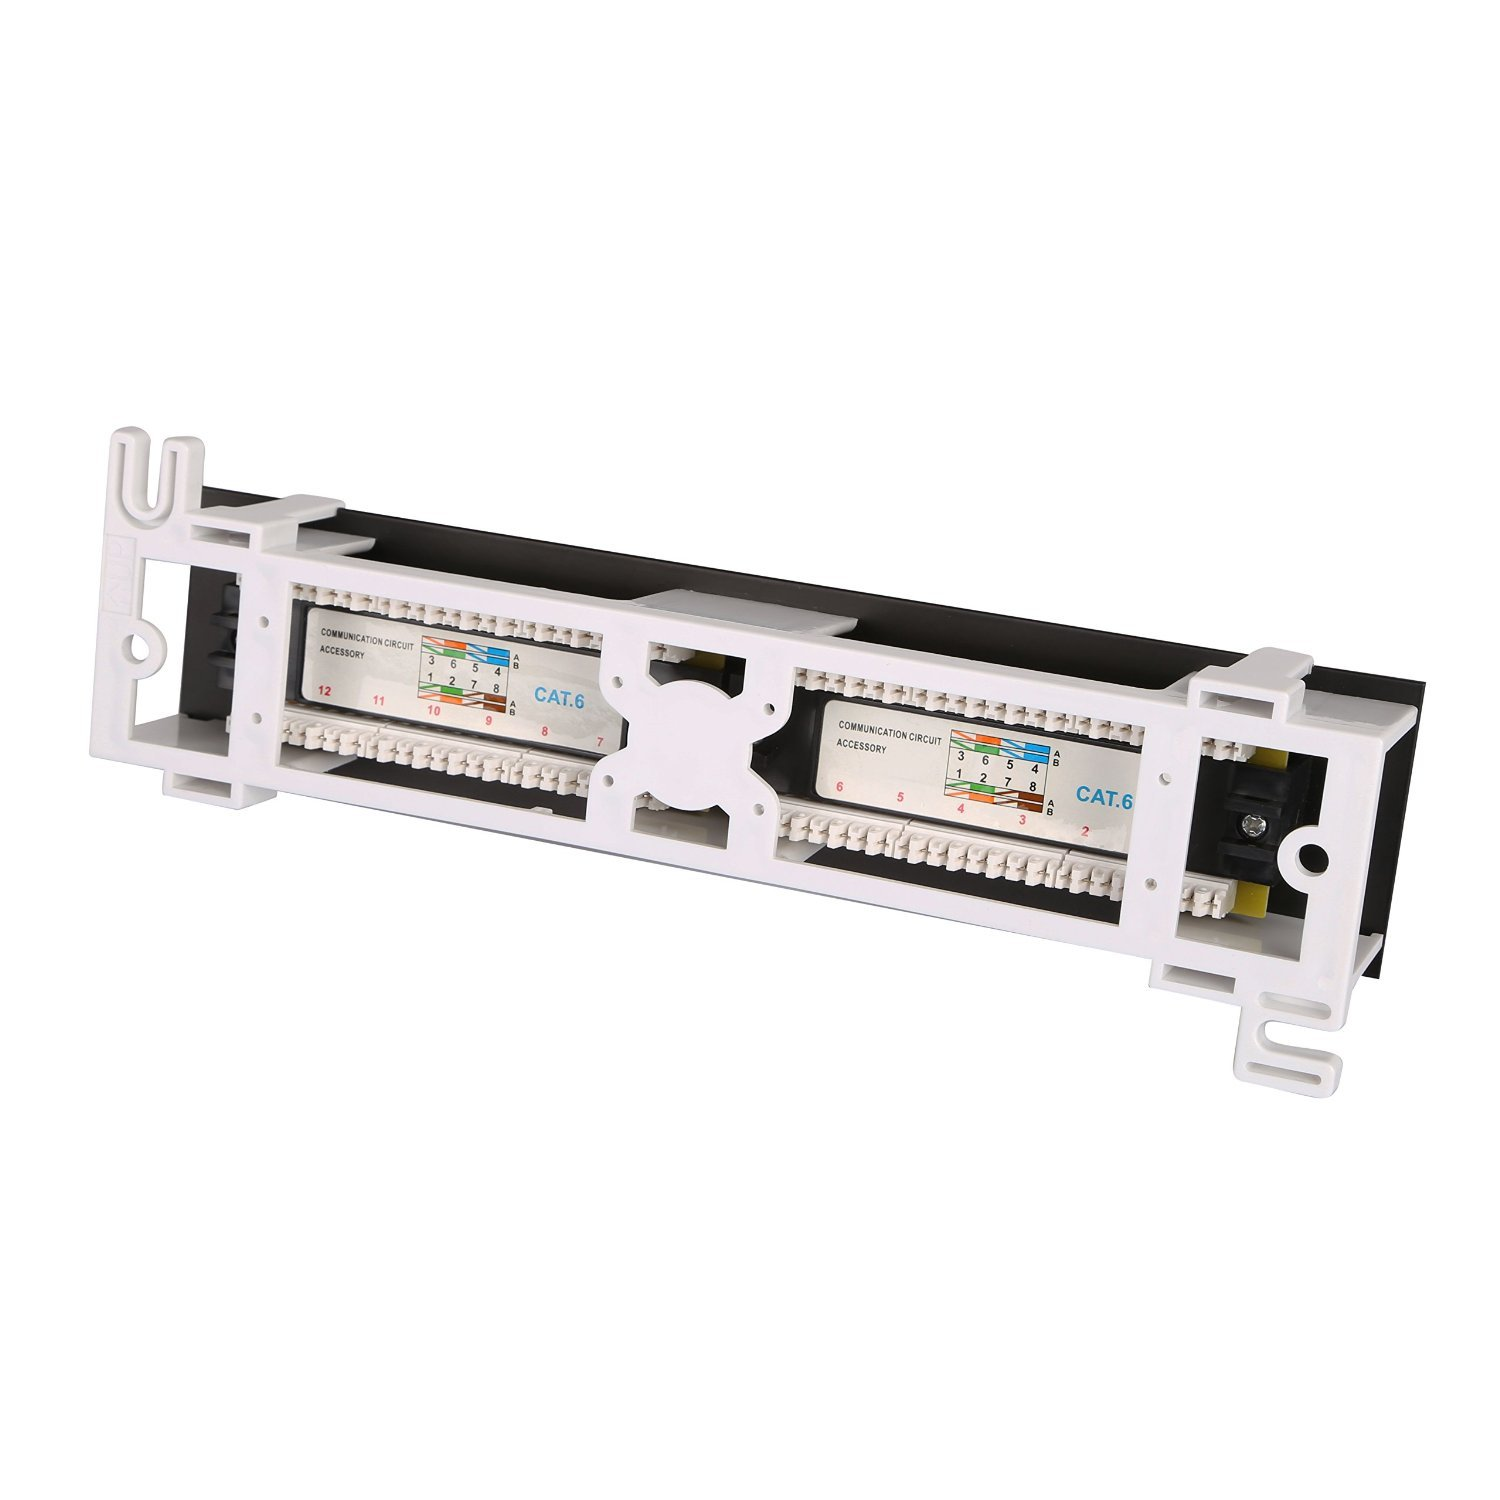 Dshot 12 Port Utp 10 Inch Cat6 Network Wall Mount Dress Wires A V Installation Patch Panel To Switch On Rack Surface Computers Accessories